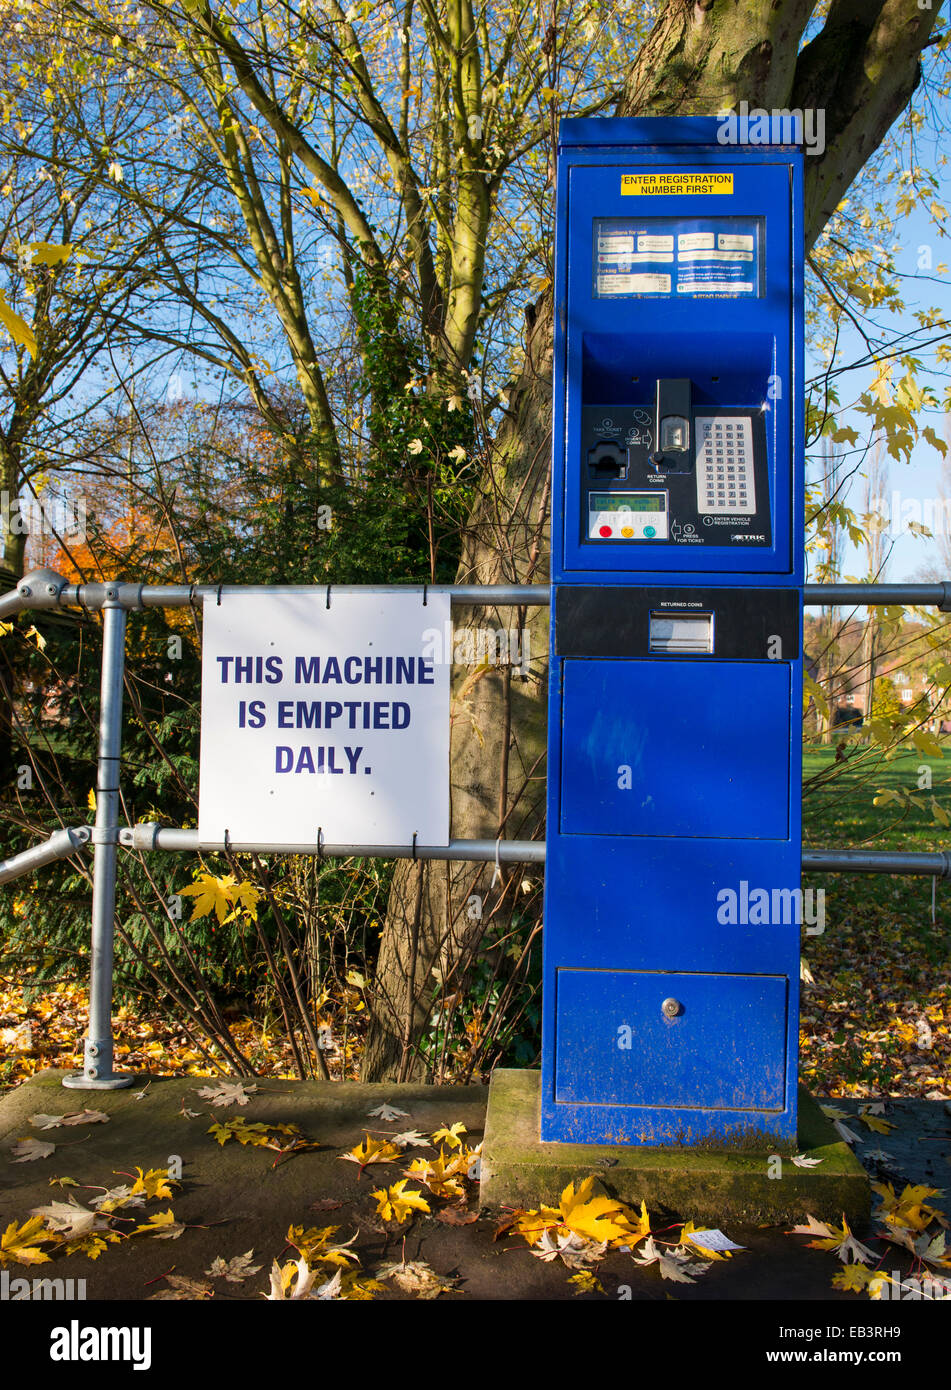 Pay and display machine in a car park at Bridgnorth, Shropshire, England. - Stock Image